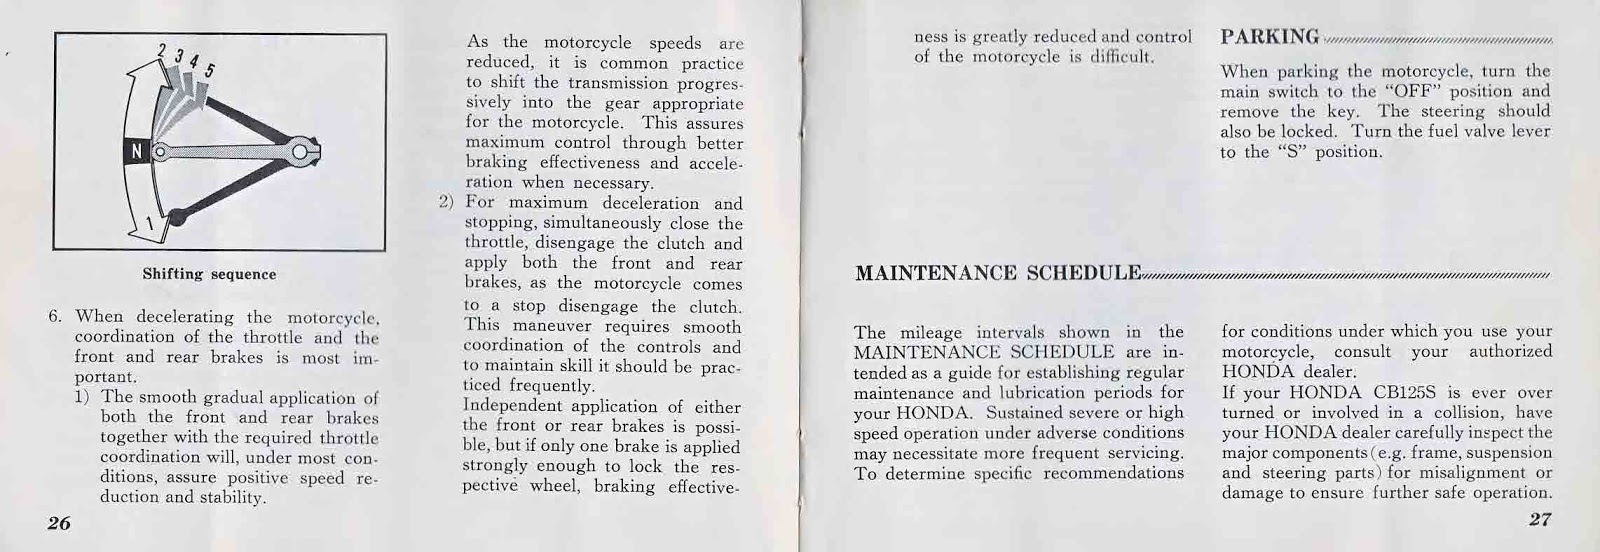 OB1 Repairs: Honda CB125S Owner's Manual